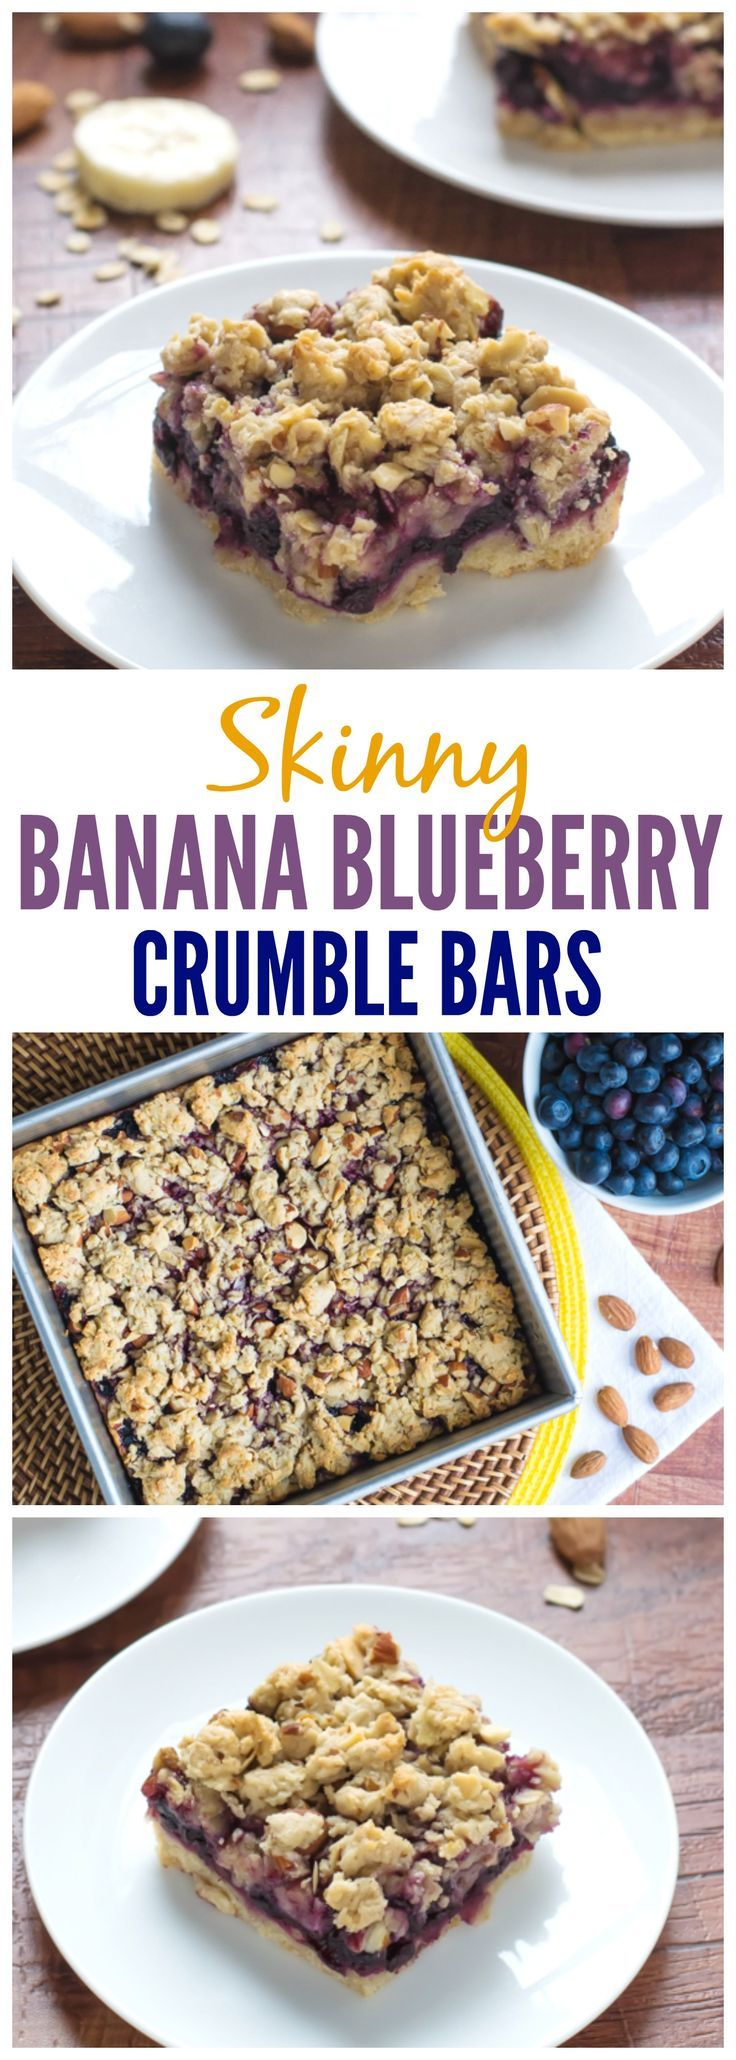 Skinny Banana Blueberry Oatmeal Crumble Bars - Fast, easy, blueberry bars that great for breakfast, snacks, or a healthy dessert! Recipe at wellplated.com @Well Plated